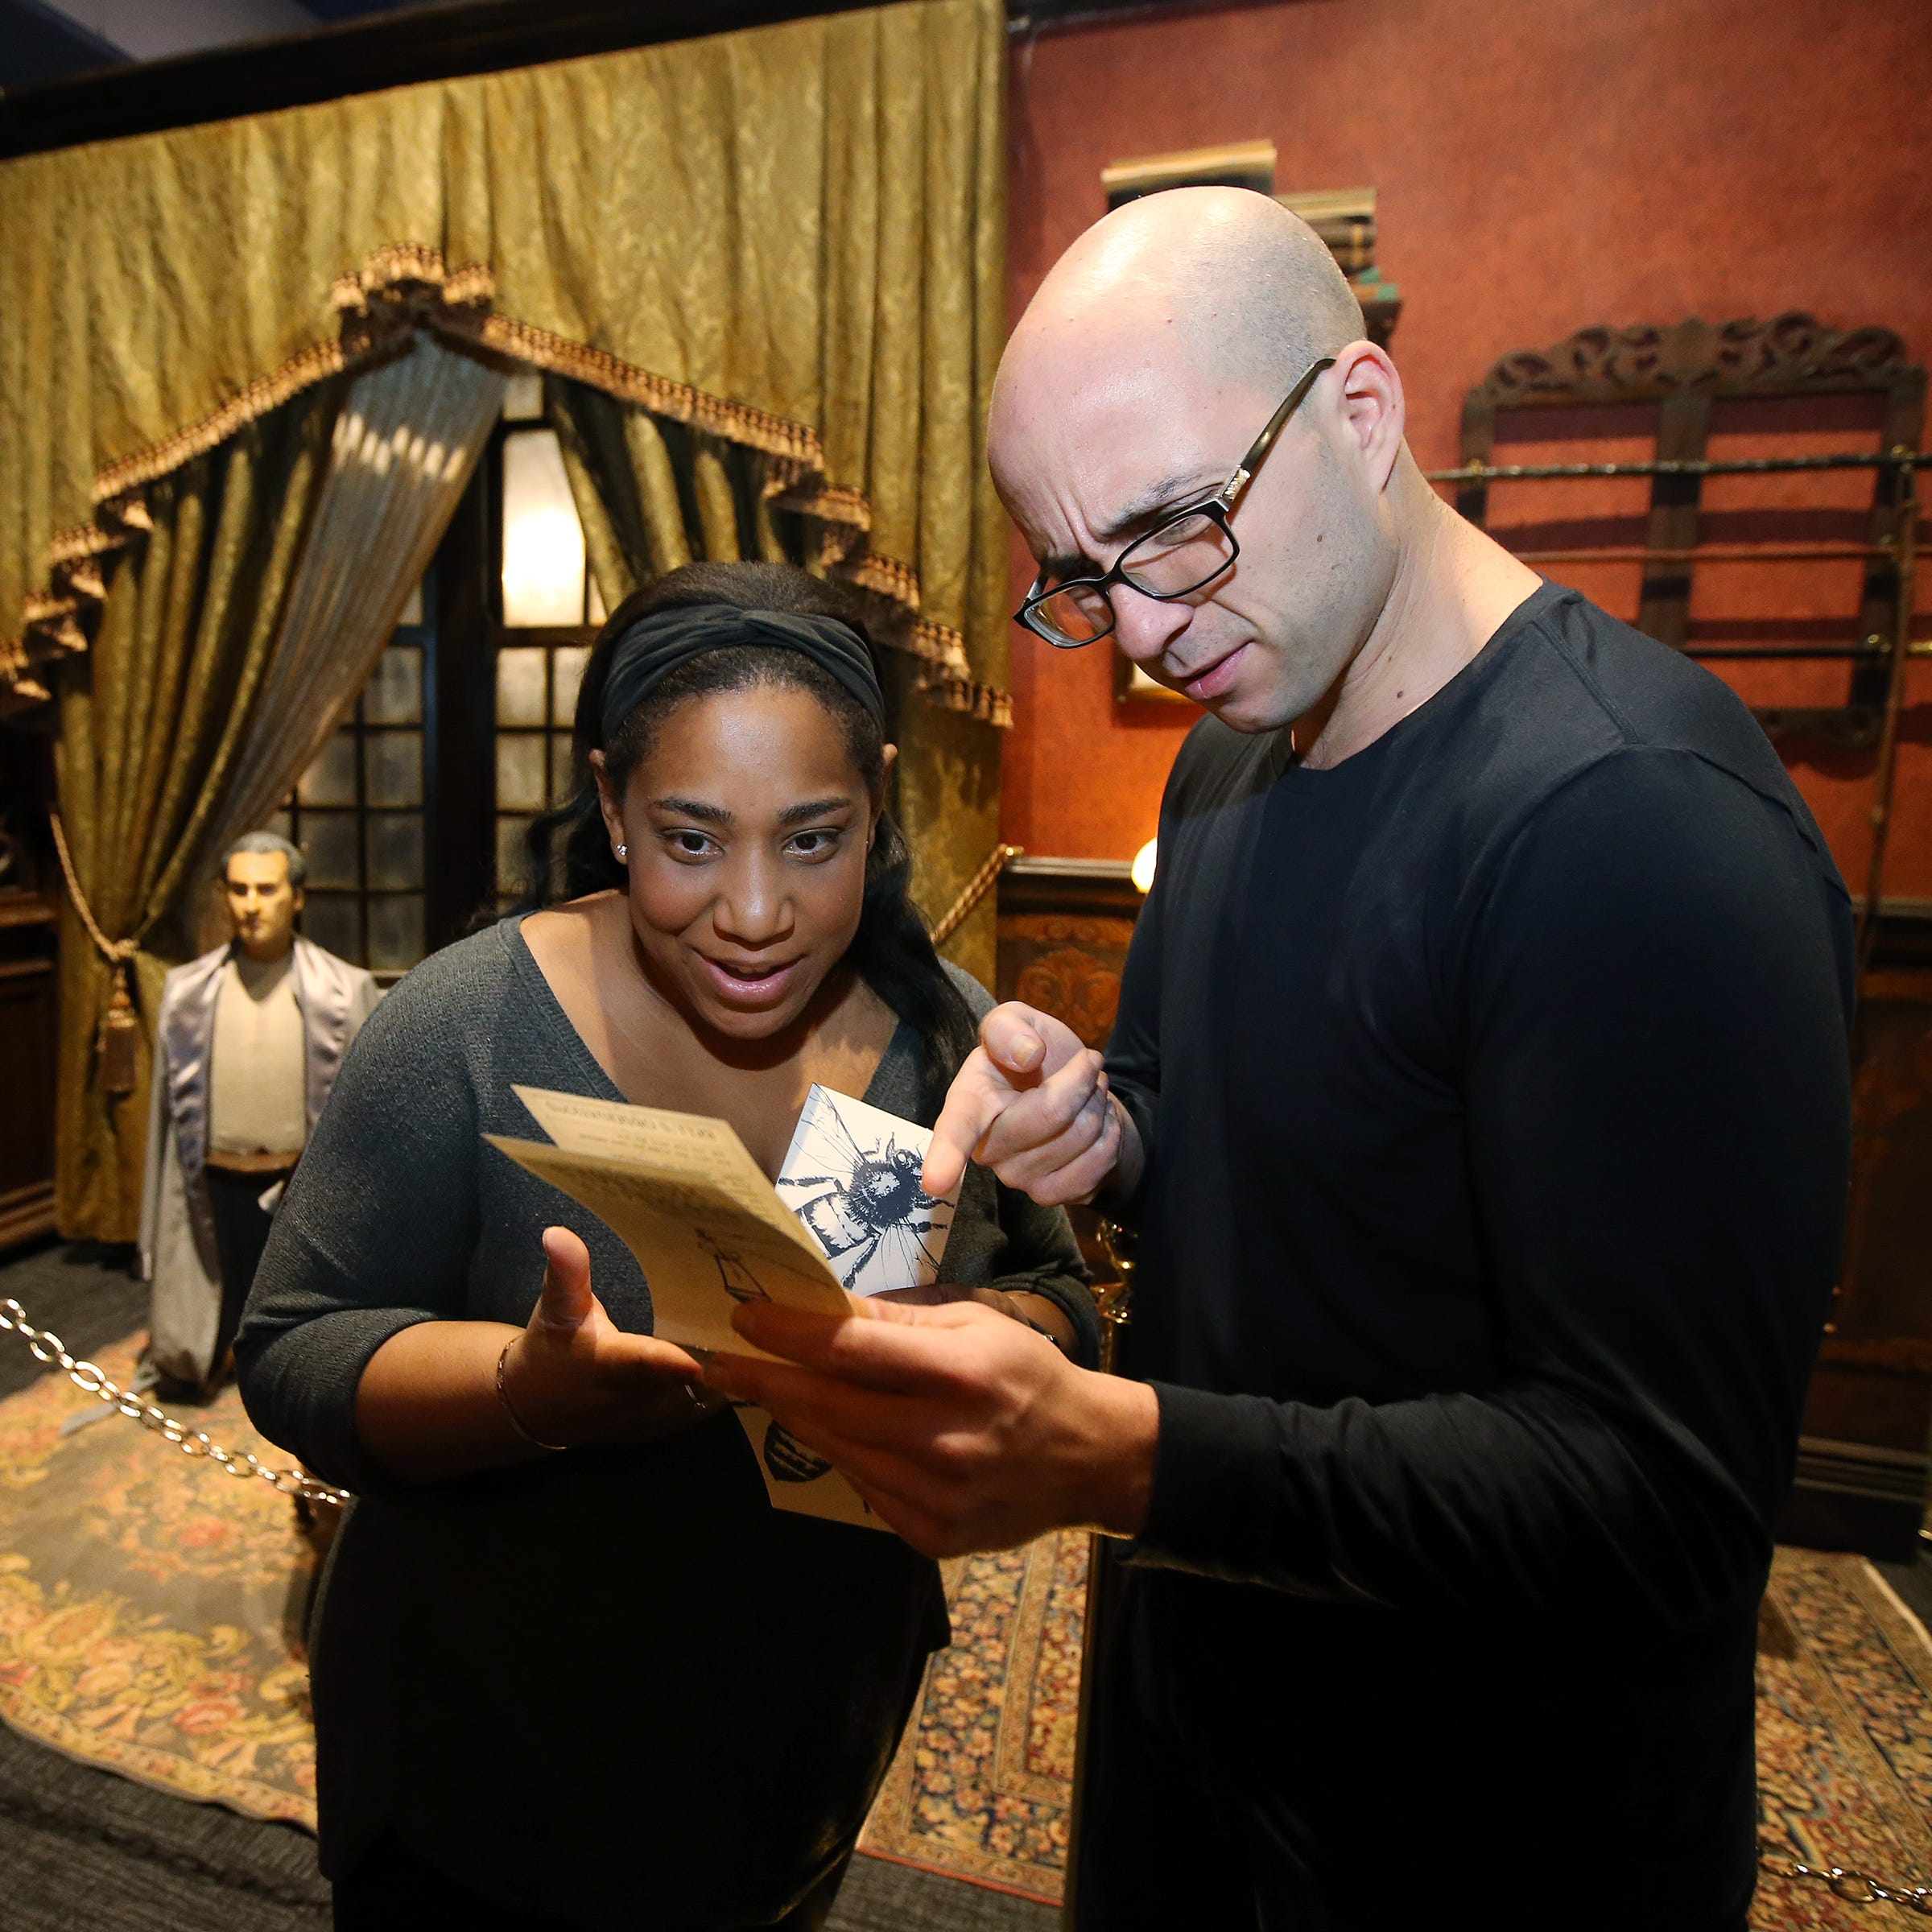 Sherlock Holmes and Watson bring mystery to Liberty Science Center